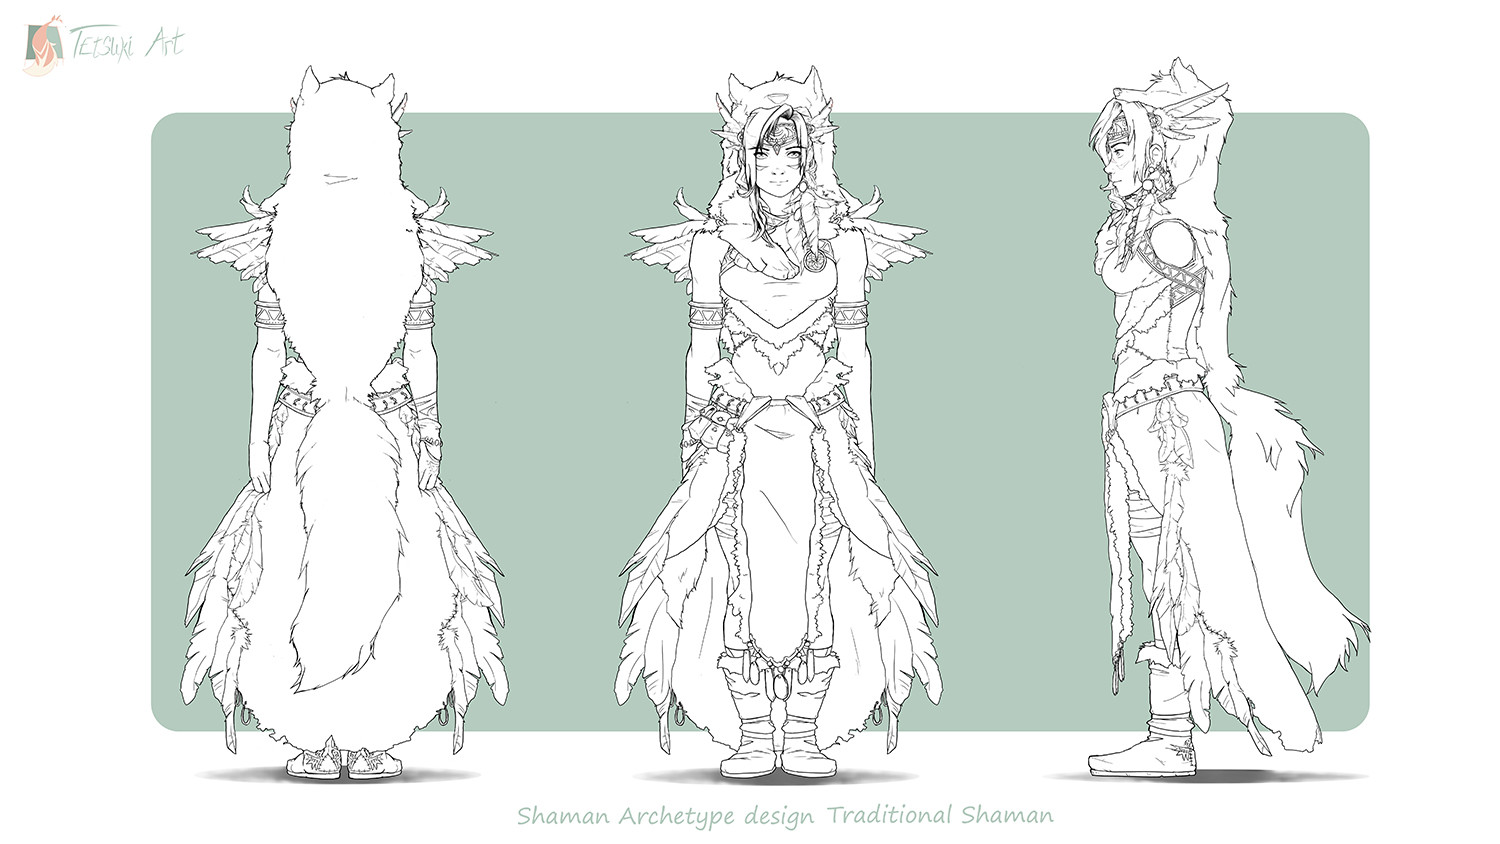 Line Art of the character design